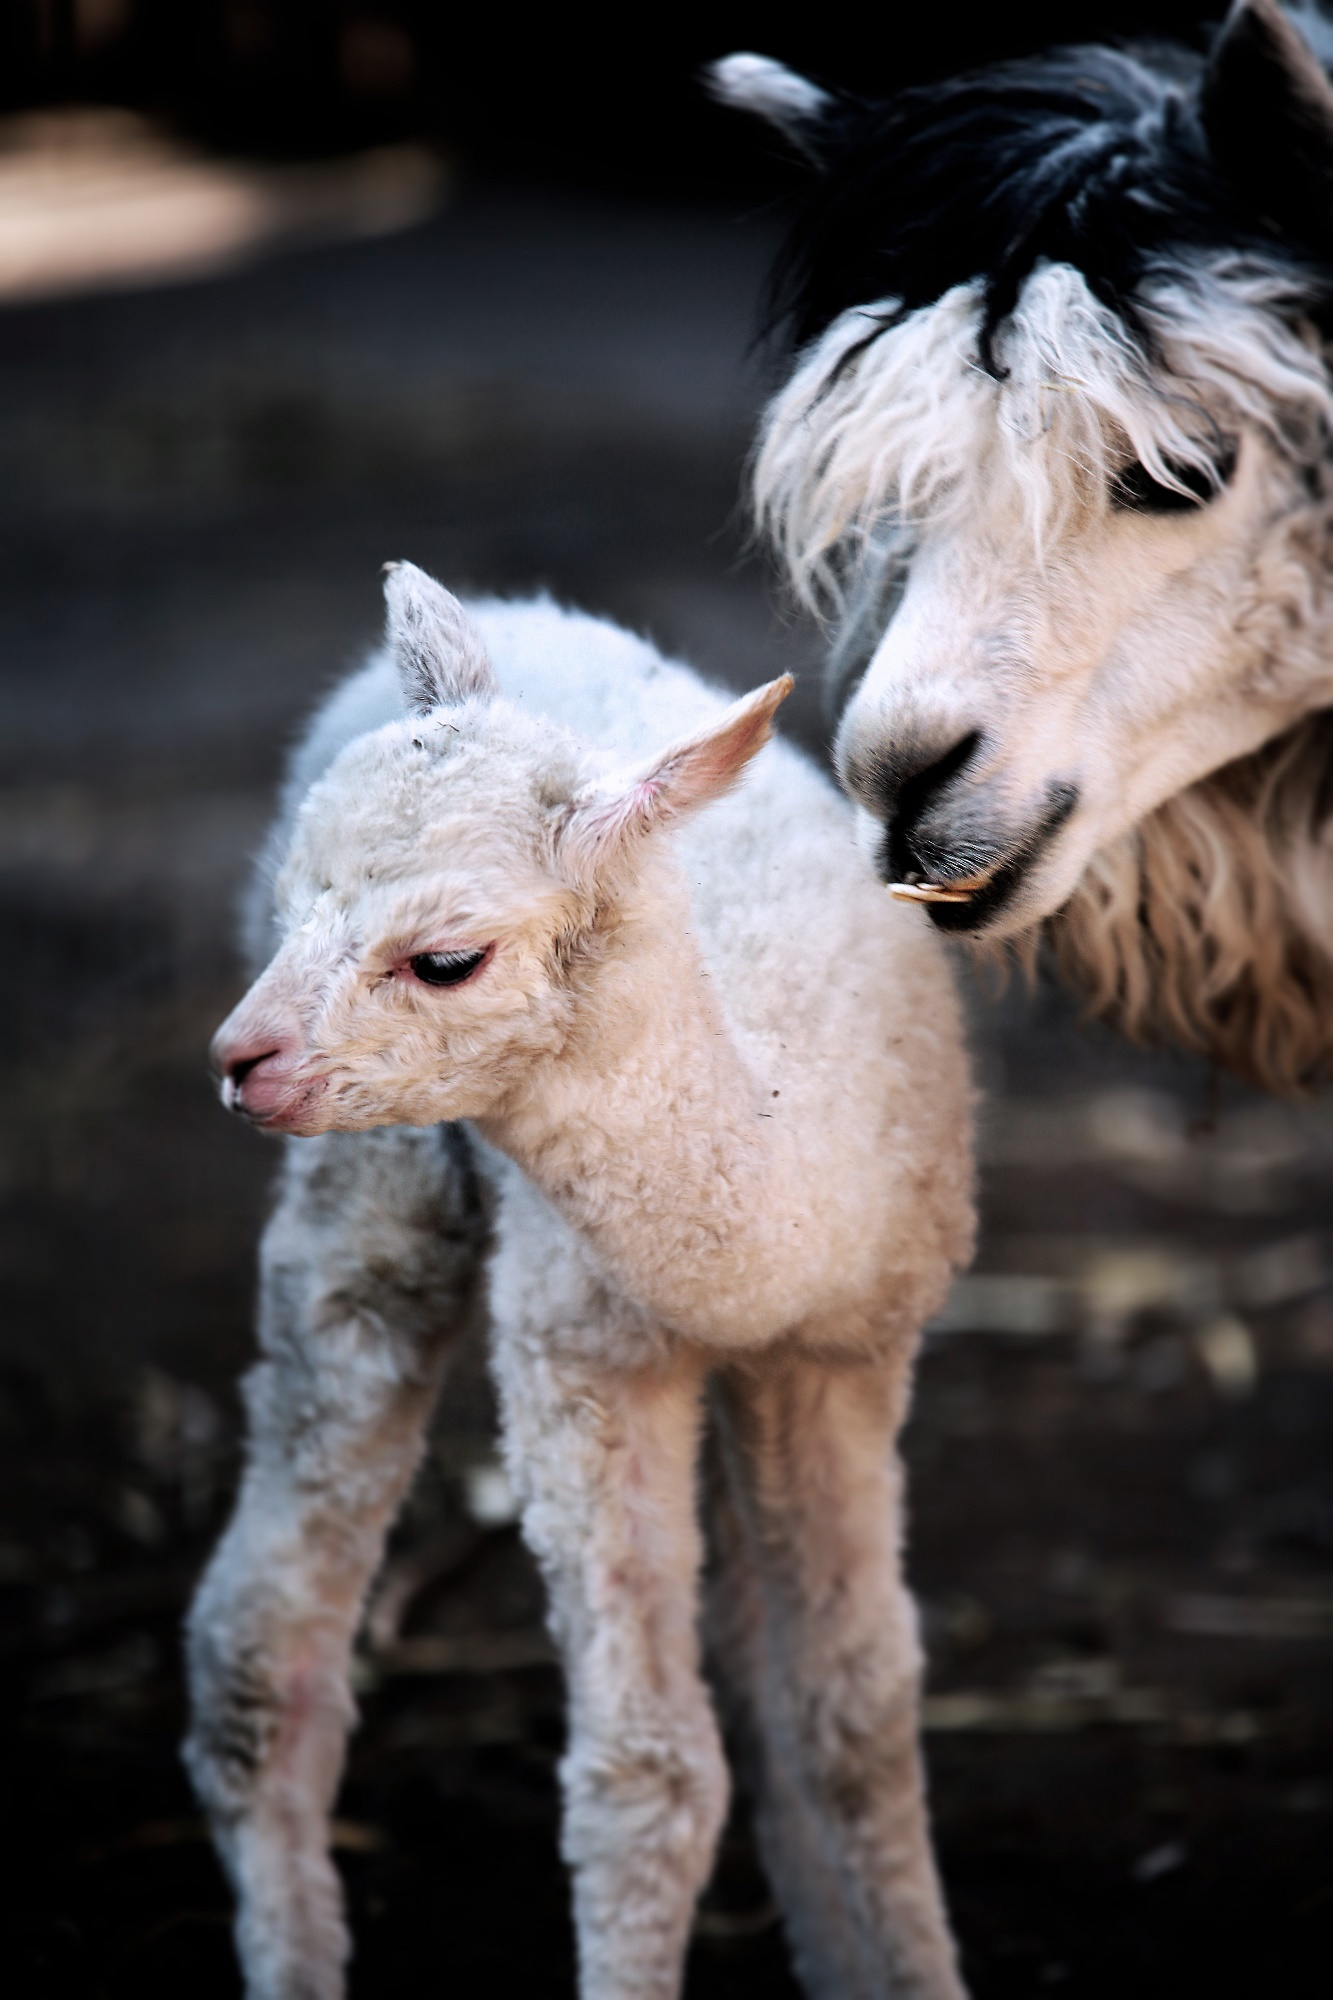 The baby alpaca was born on March 25.